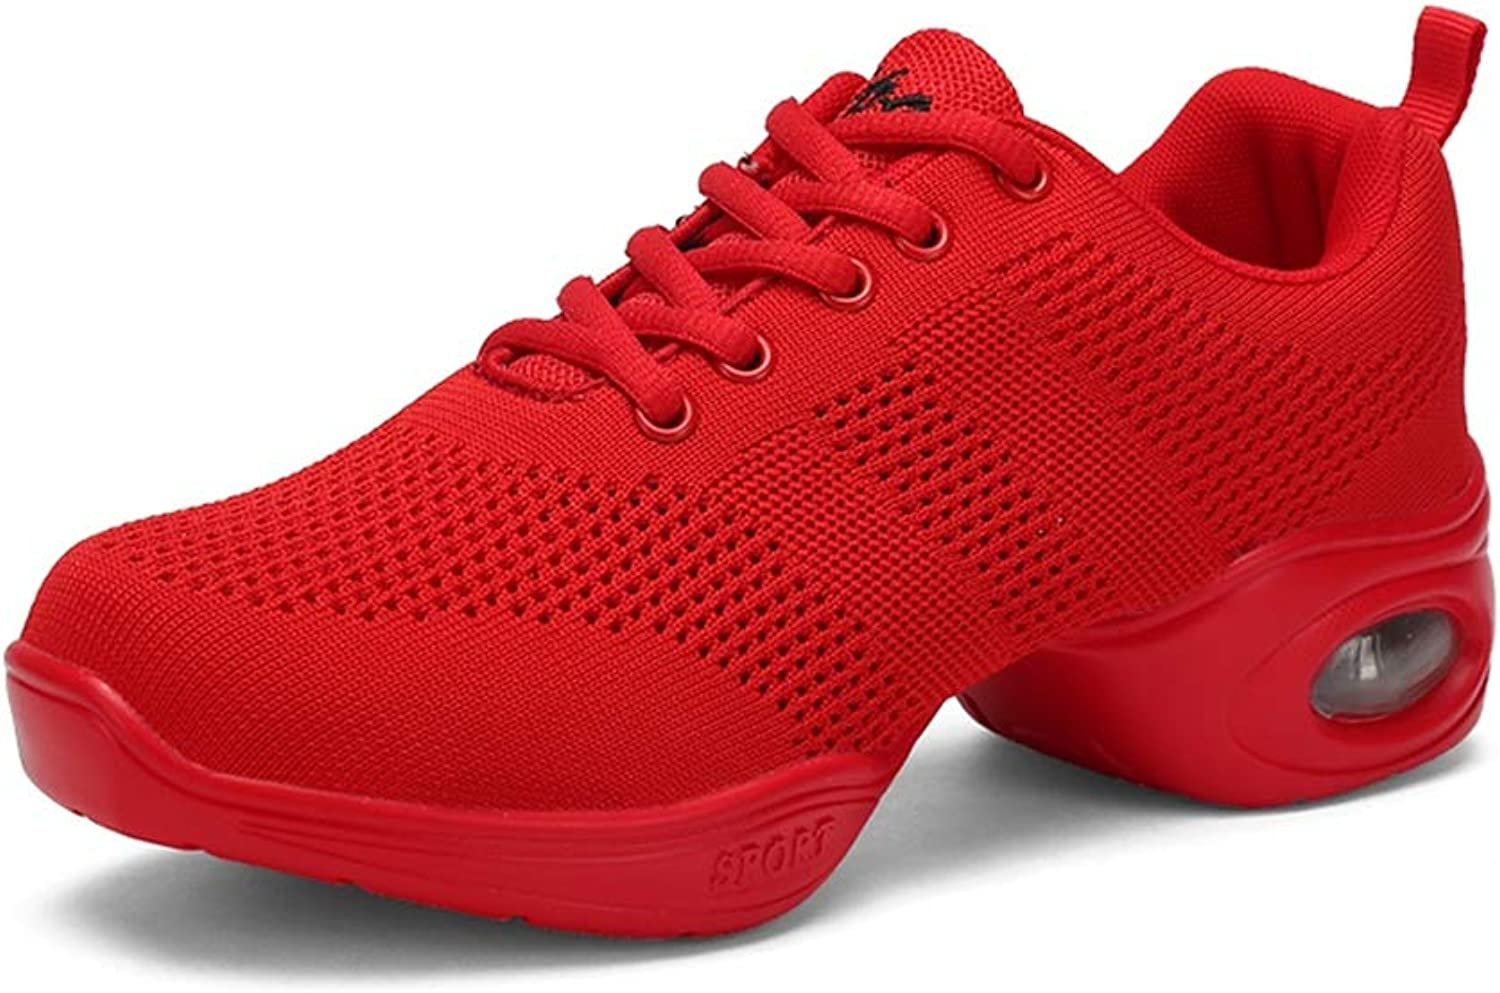 2019 Men Fashion Sneakers, Women'sComfortable Breathable Weave Vamp Lace Up Performance Modern Ballroom shoes Dance shoes for Ladies (color   Red, Size   5 D(M) US)